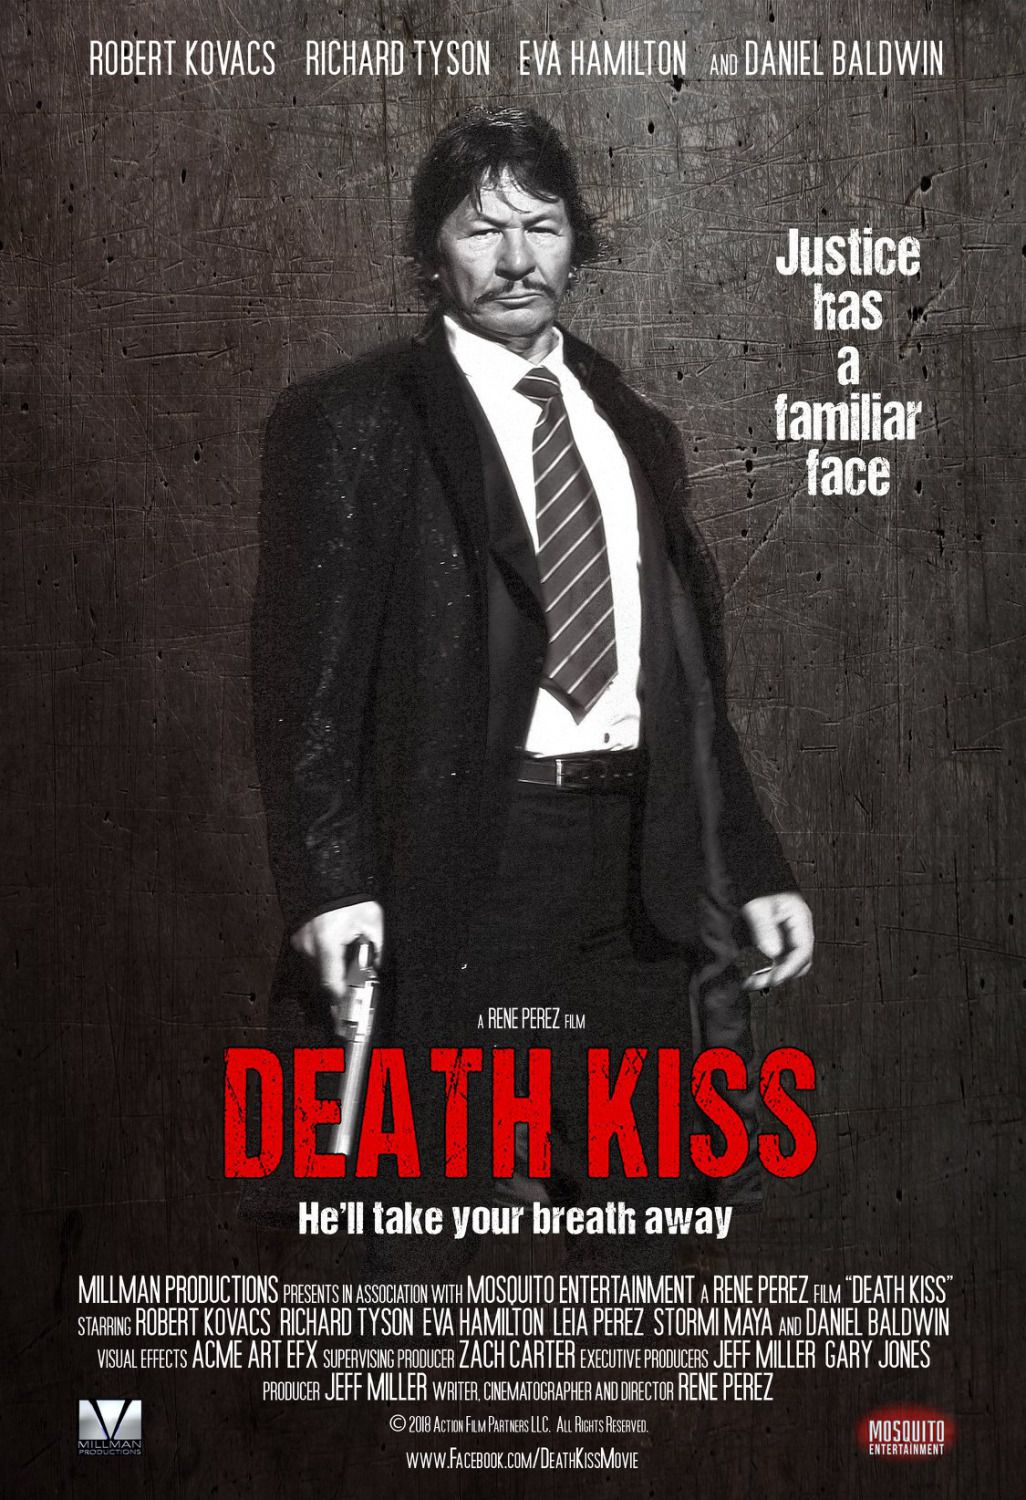 Death Kiss - Justice has a familiar face - 2018 film poster